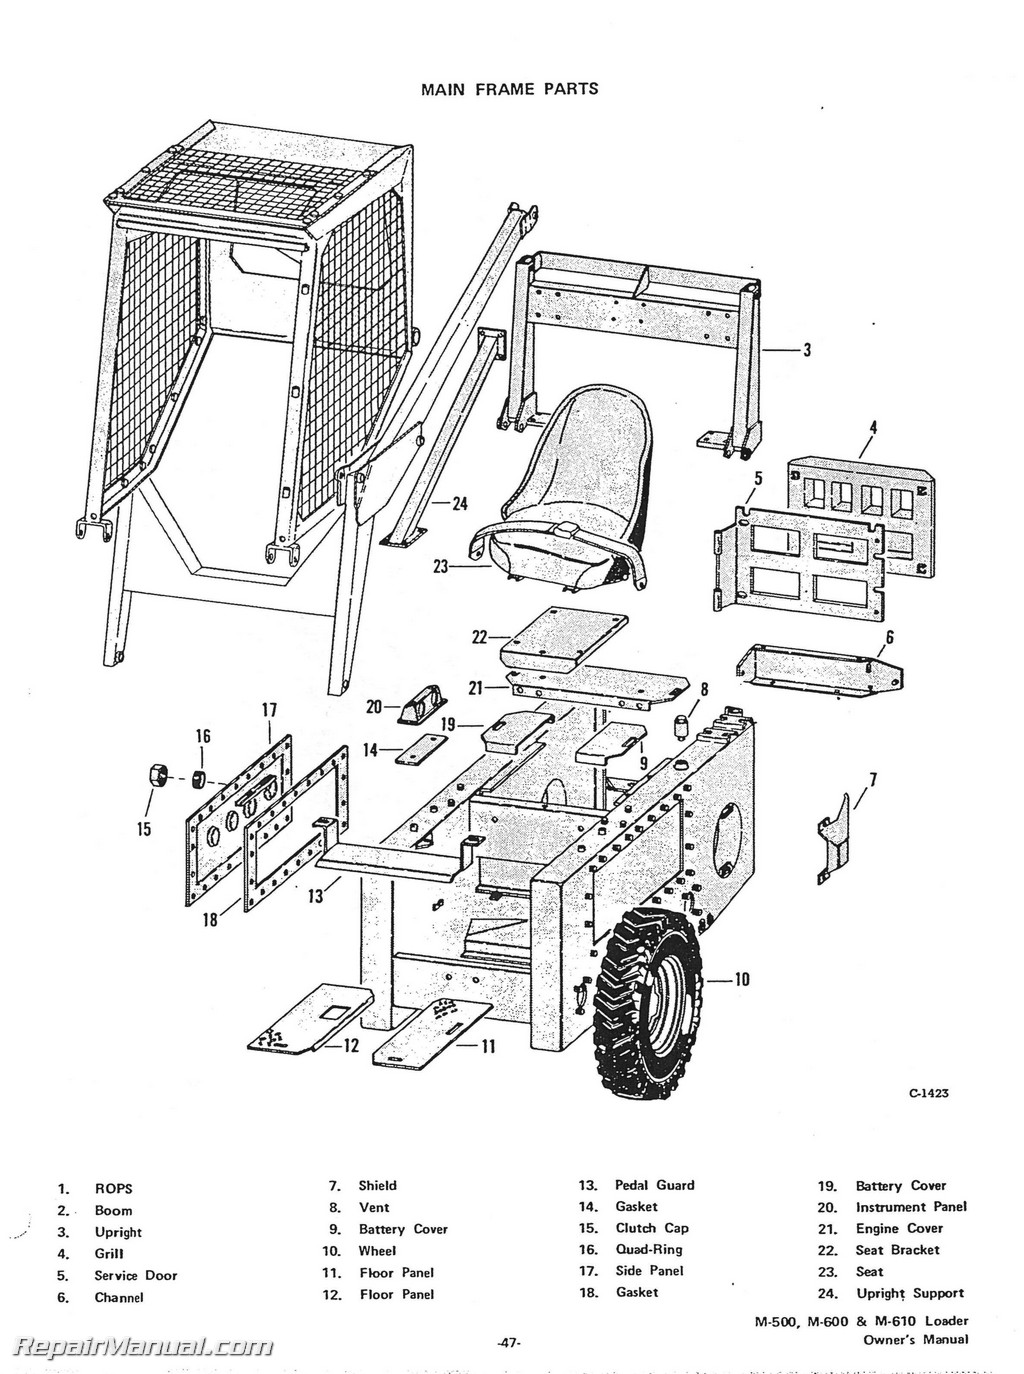 skid steer case 1845c parts diagram  images  auto fuse box